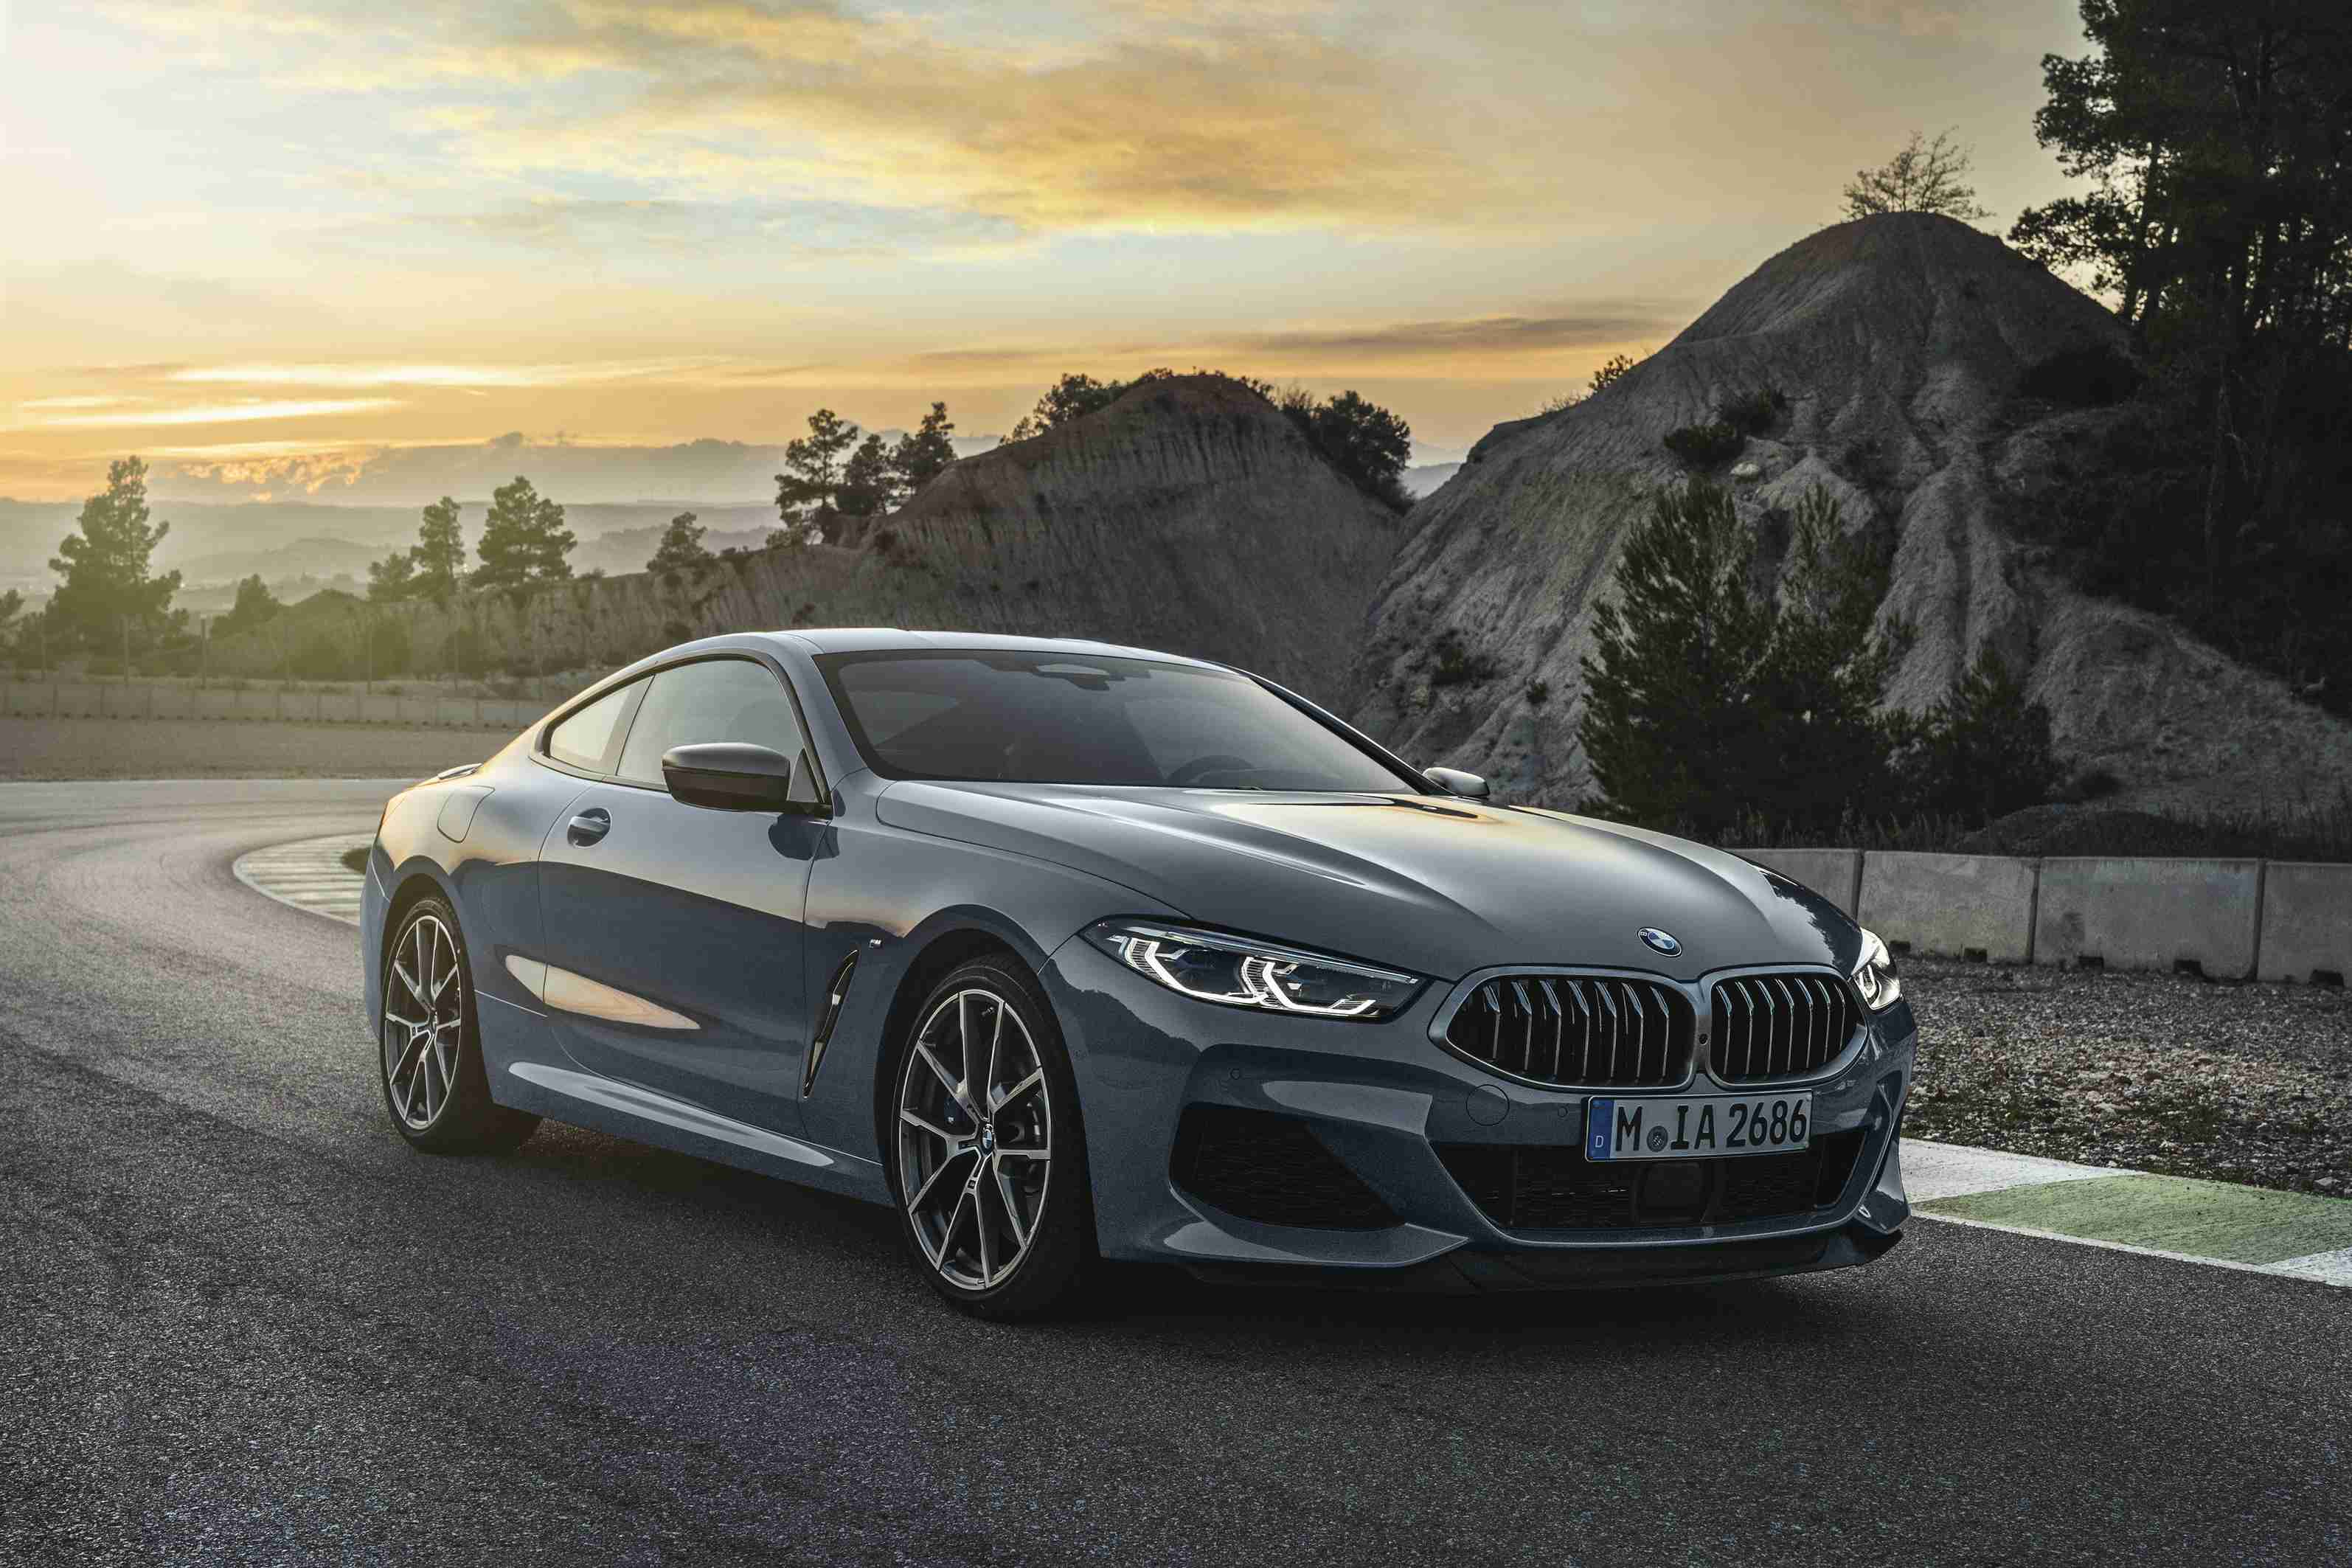 2019 8 Series coupe